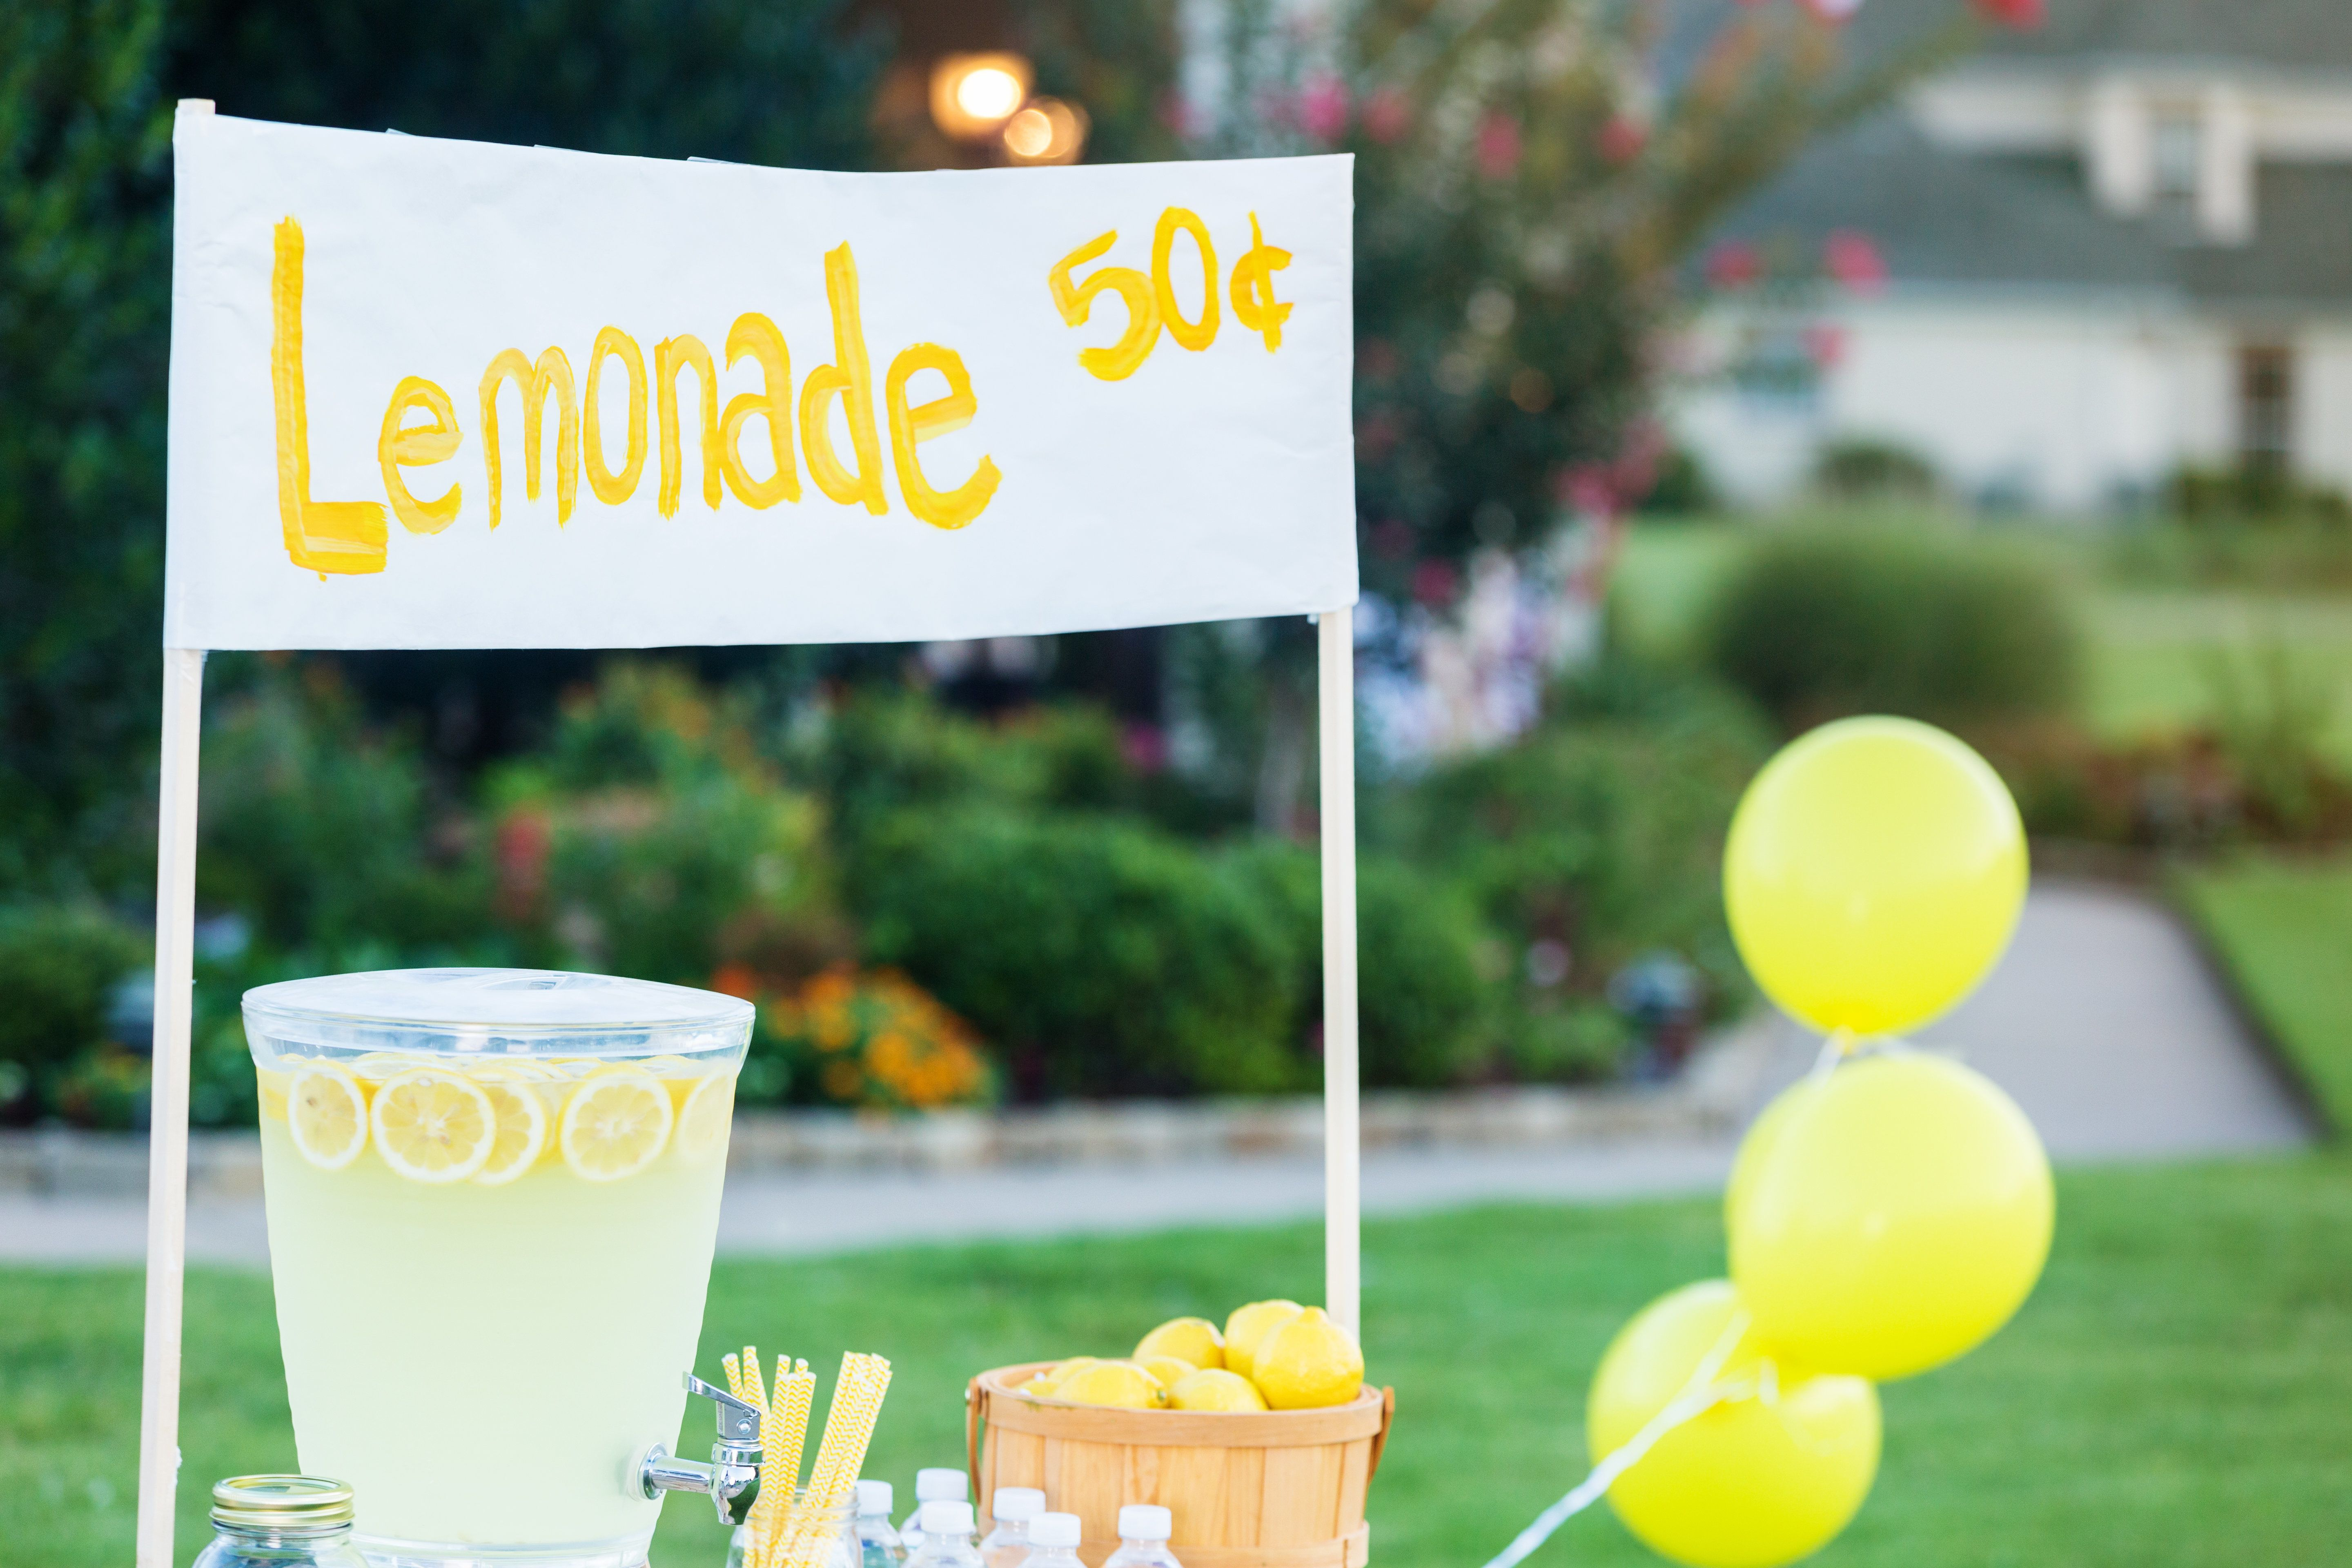 A lemonade stand is set up in the front yard of a home in the suburbs. A beverage dispenser and a basket of fresh lemons are on the stand. A sign is at the top of the stand with the price of the lemonade.